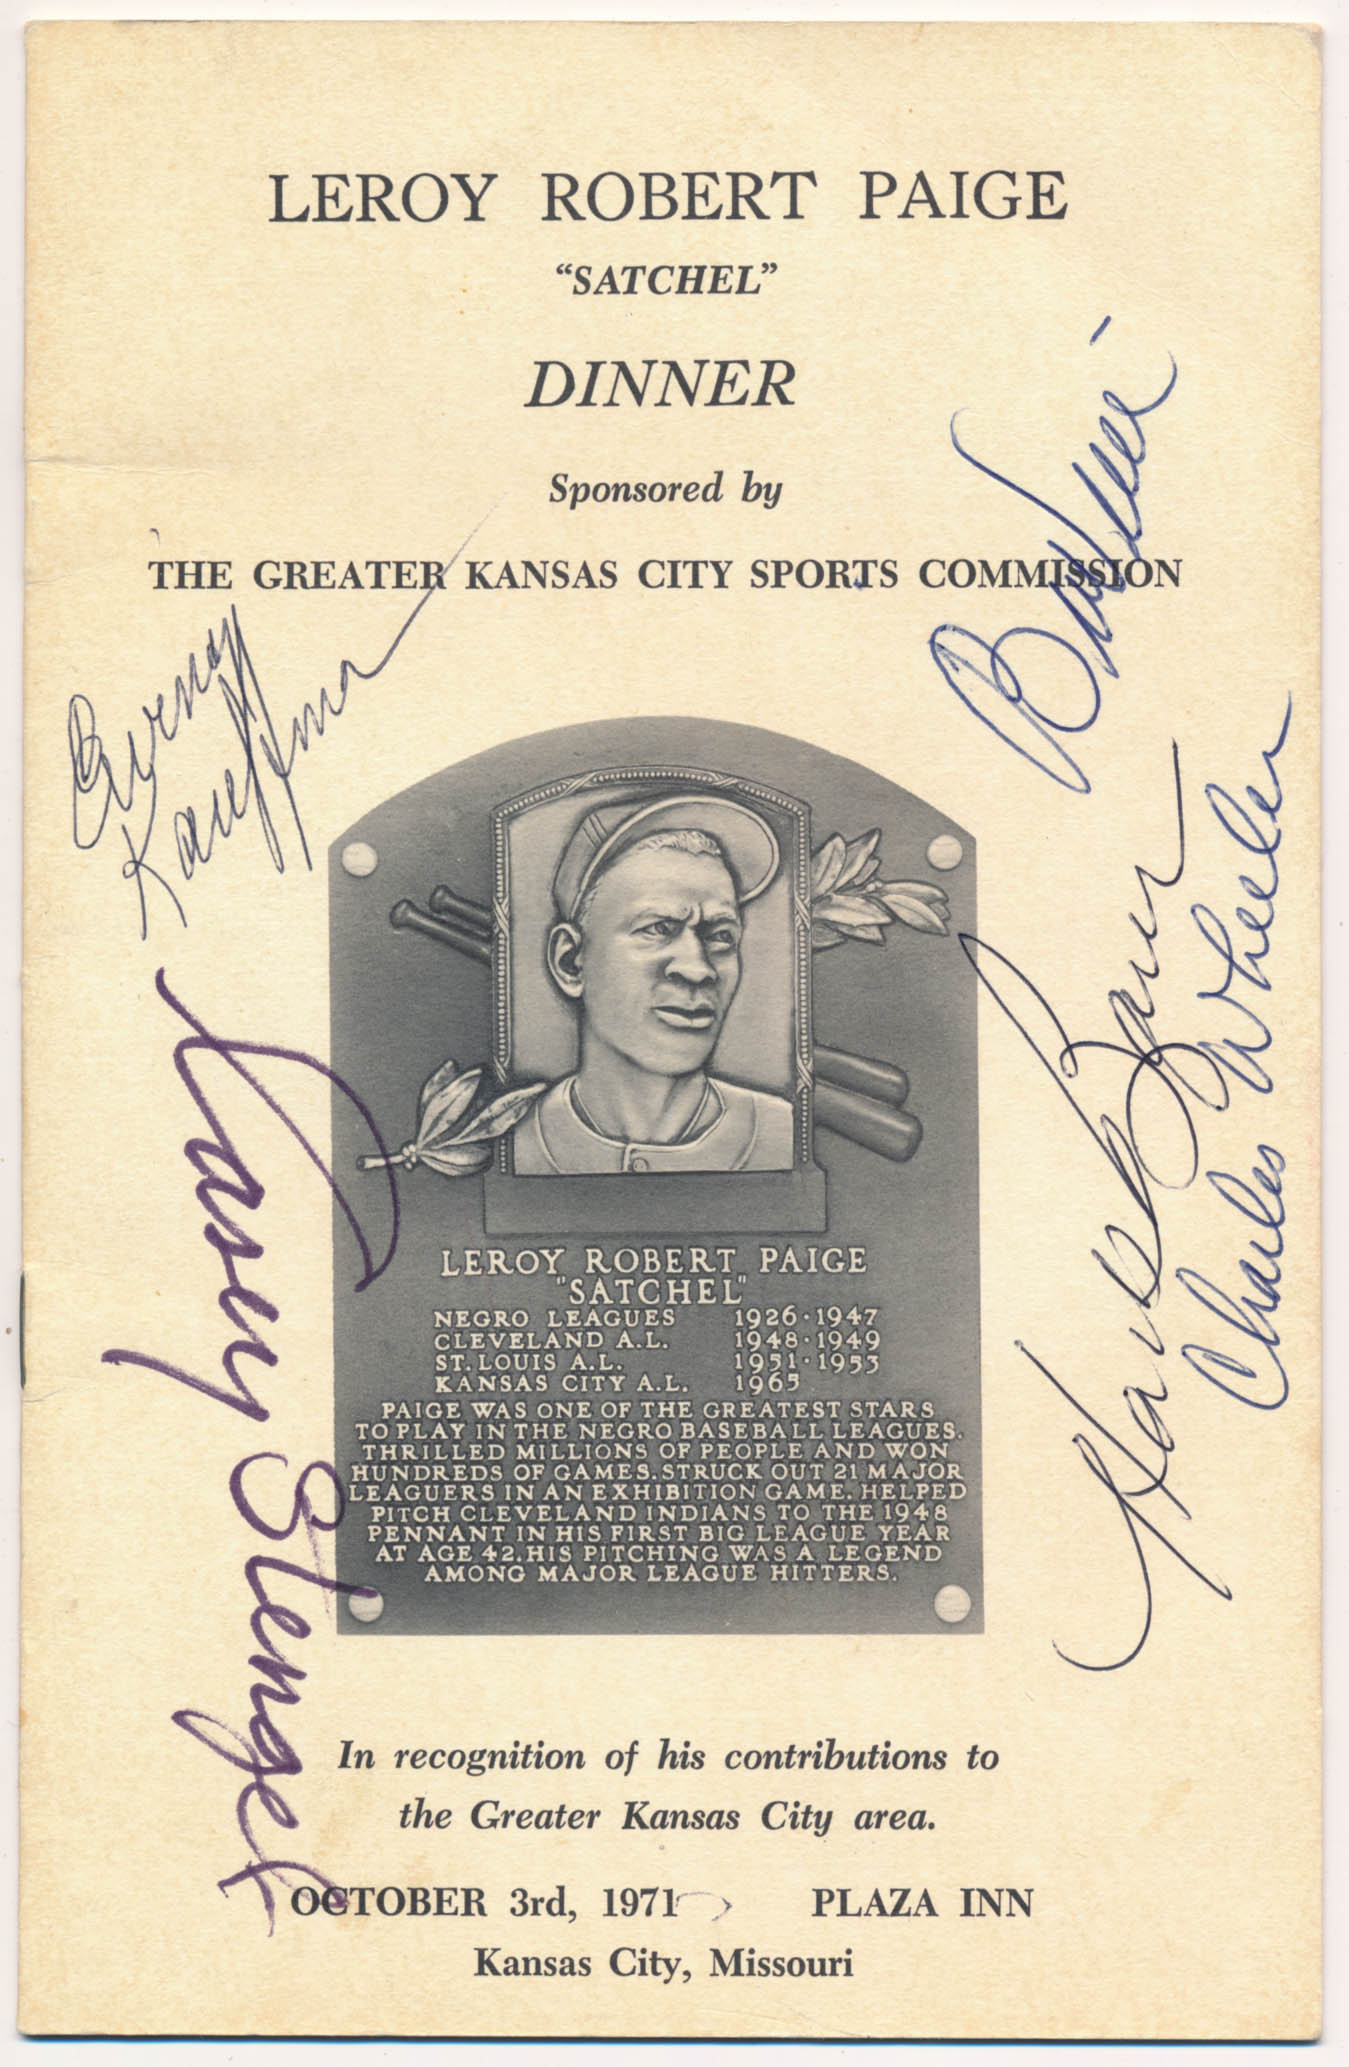 Lot #486  Program  1971 Satchel Paige Dinner Signed Program (5 sigs) Cond: 9.5